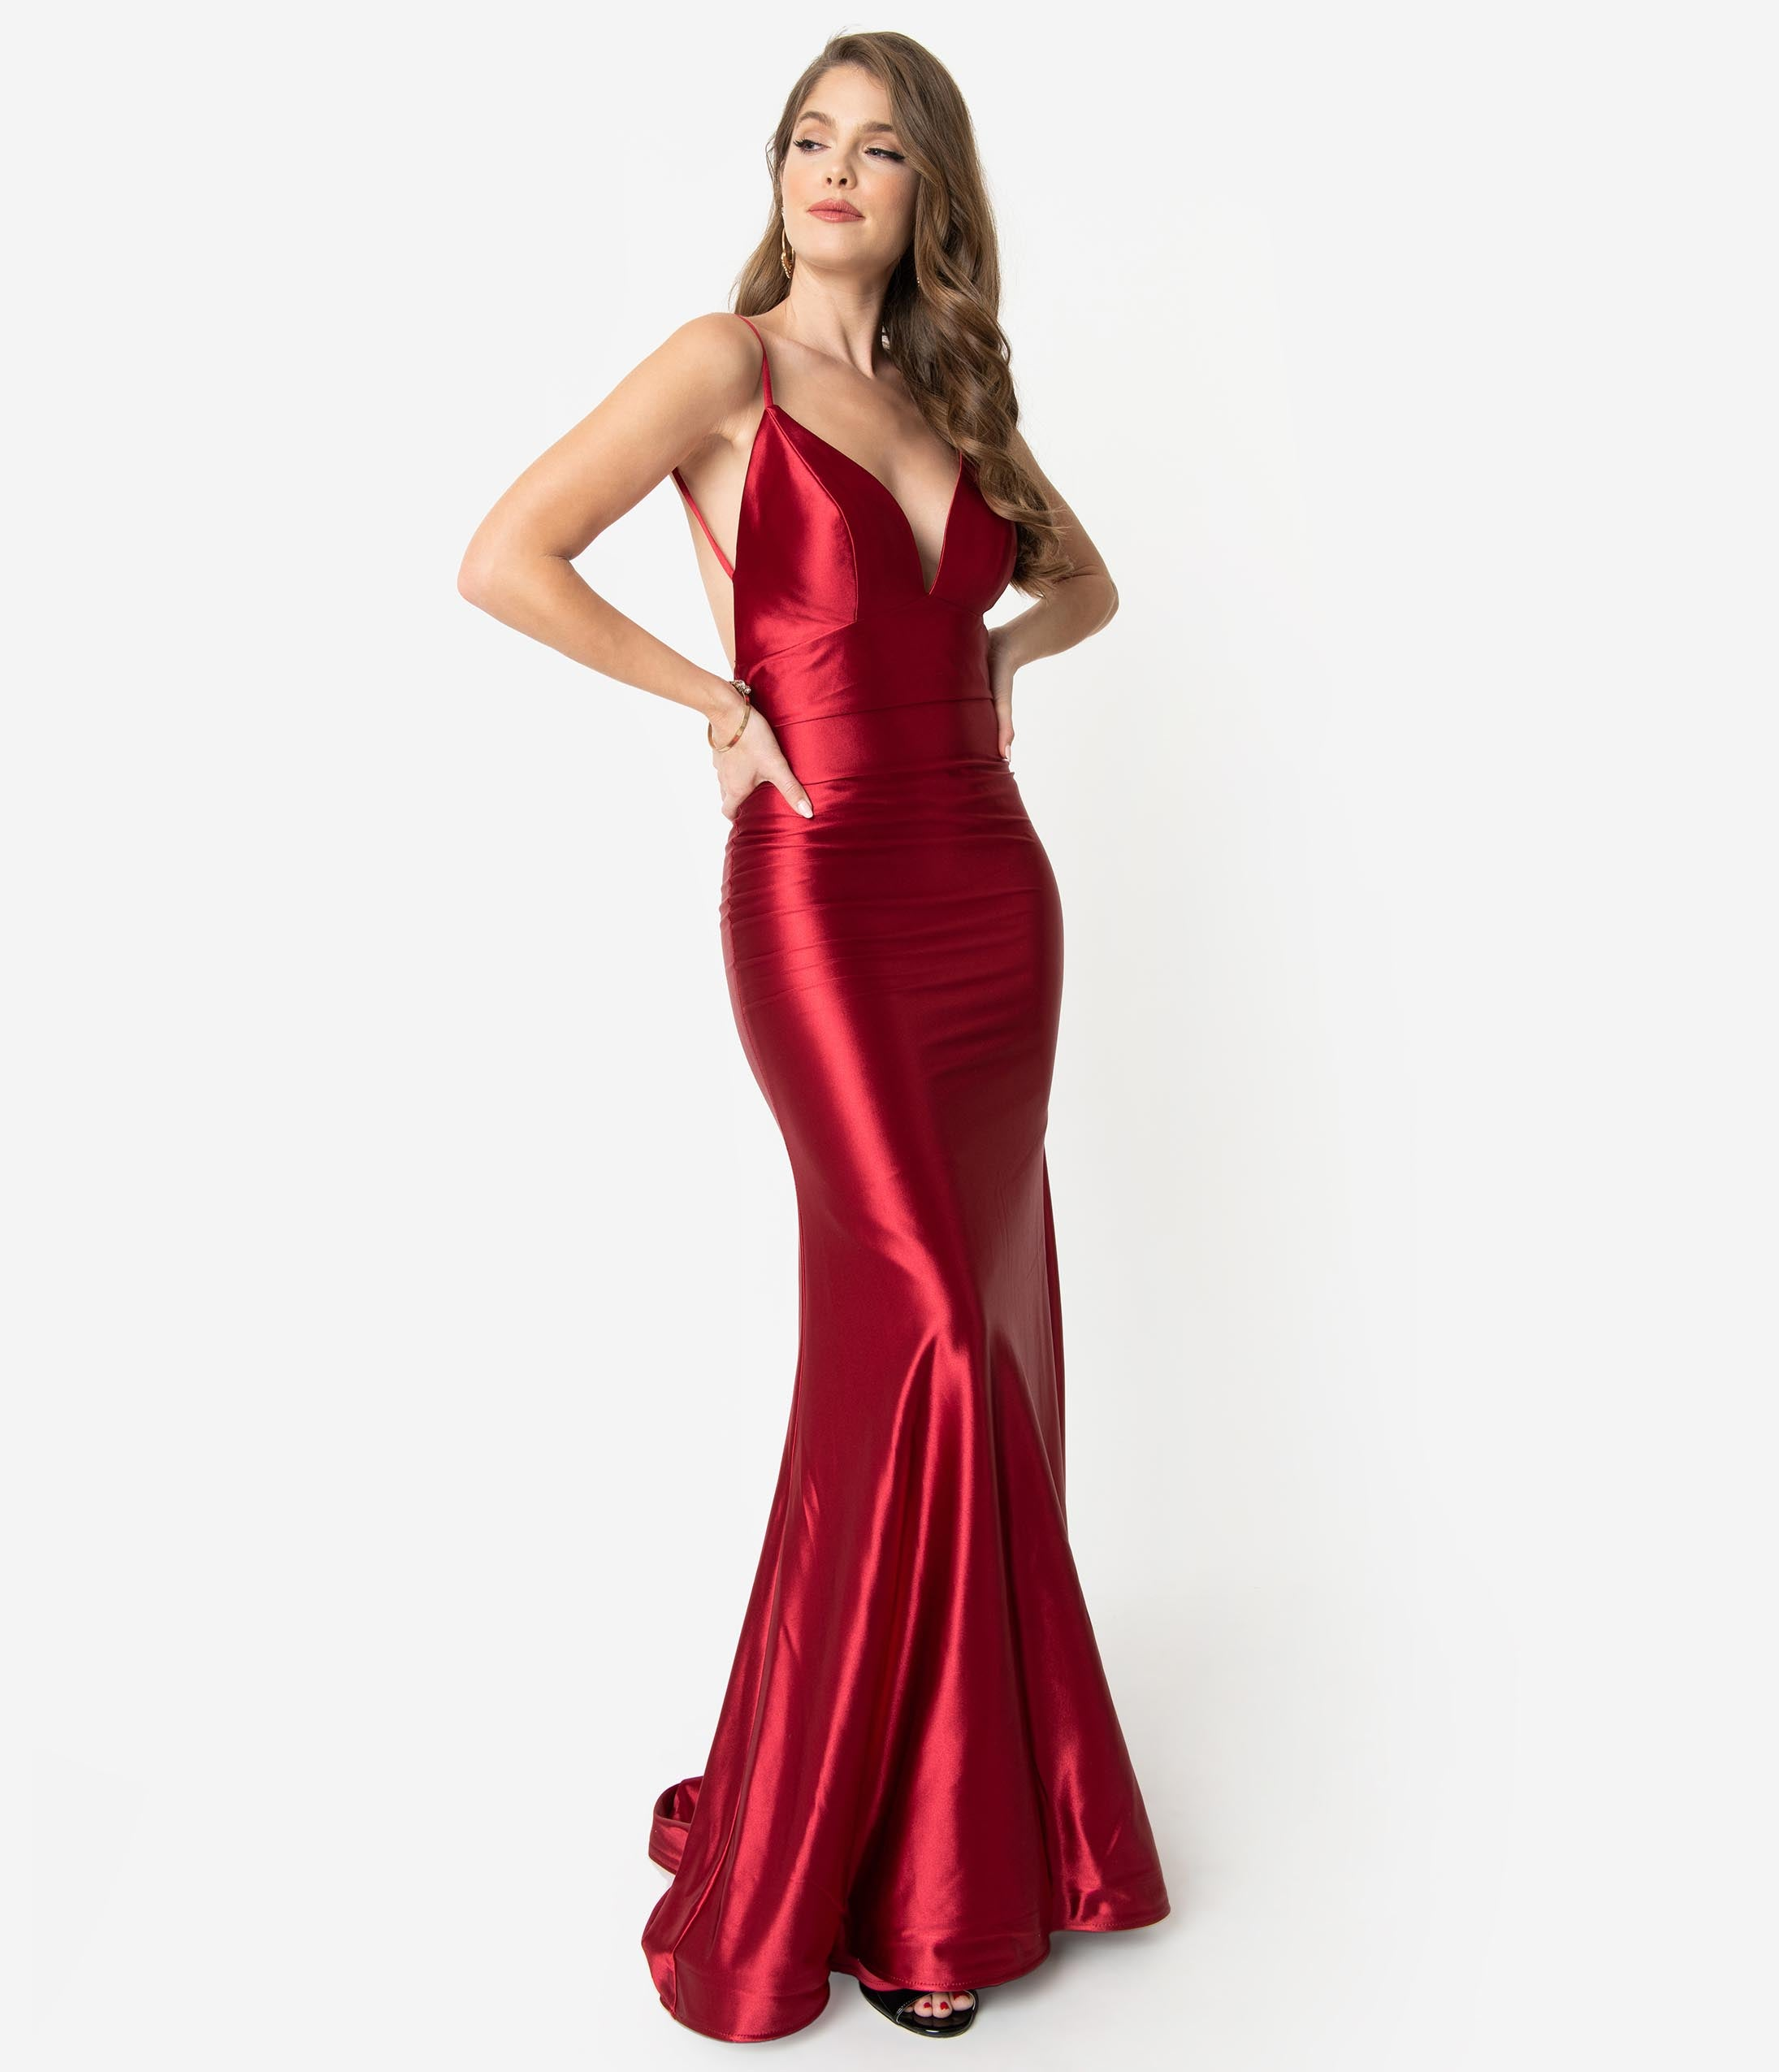 5eeb587111 1960s – 70s Cocktail, Party, Prom, Evening Dresses Boysenberry Red Satin  Sexy Sleeveless